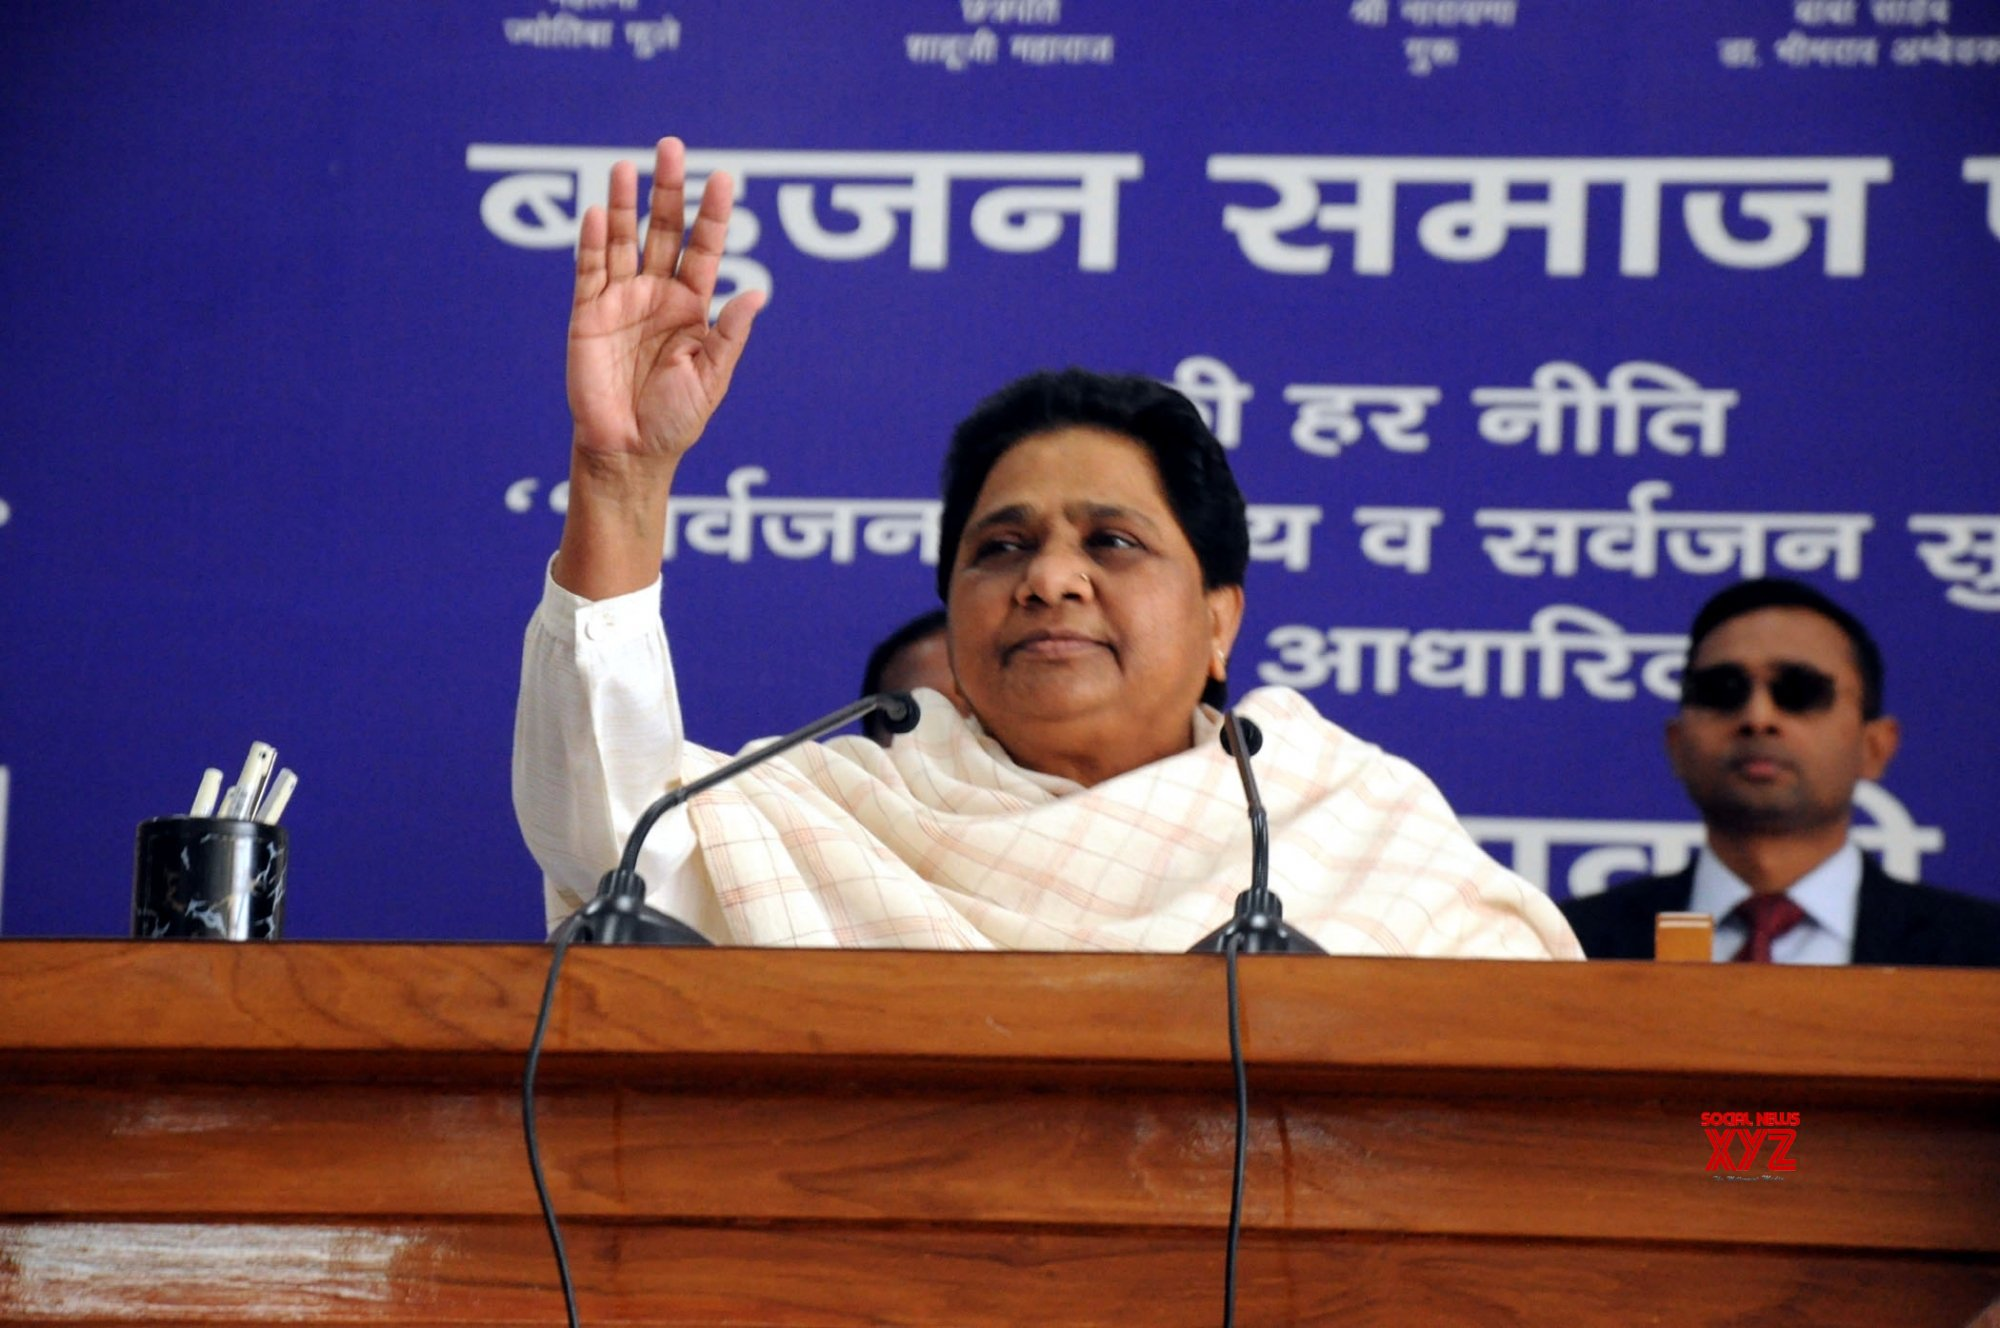 Mayawati to seek votes for Mulayam in Mainpuri